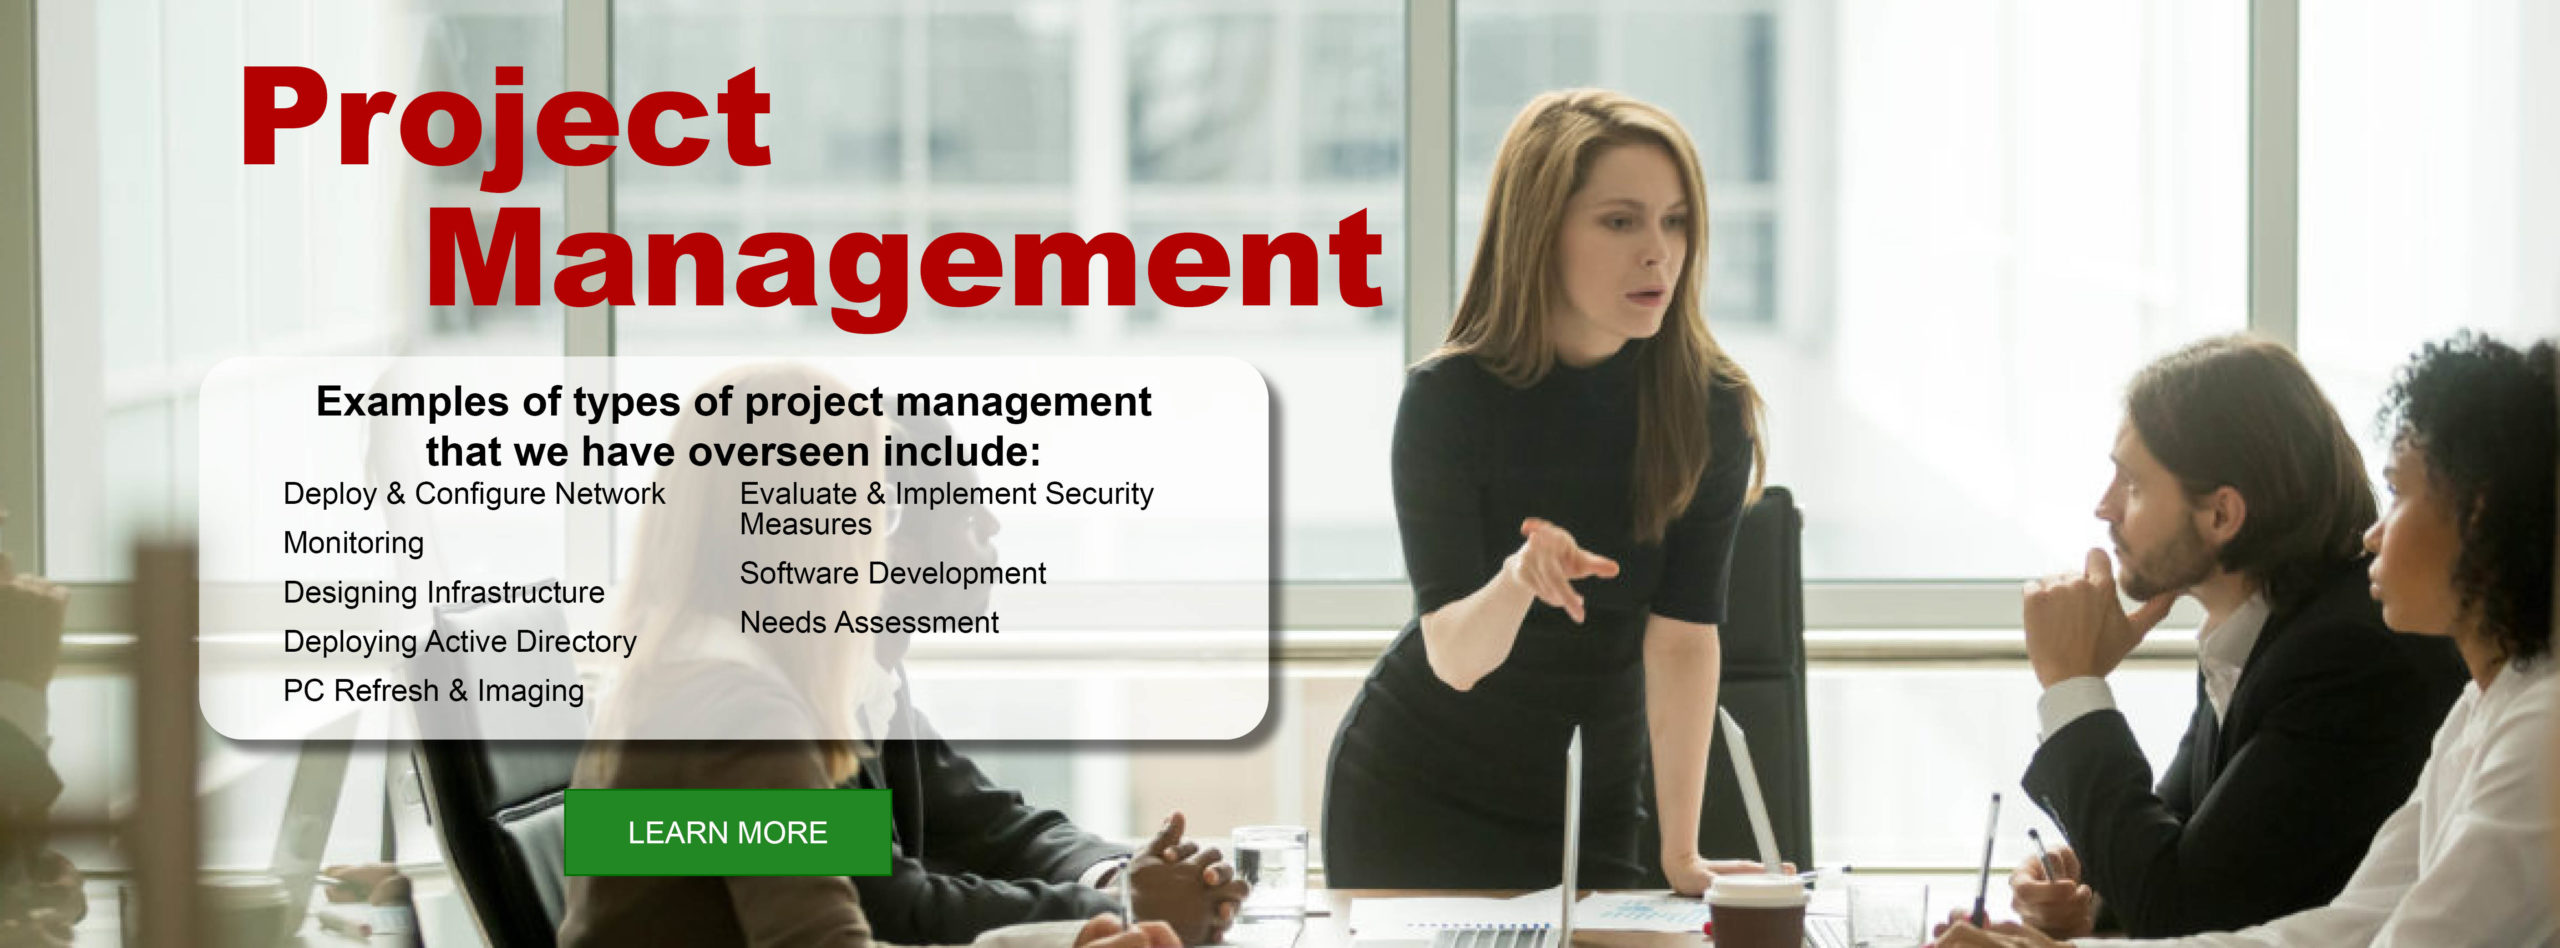 managed services project management banner #1